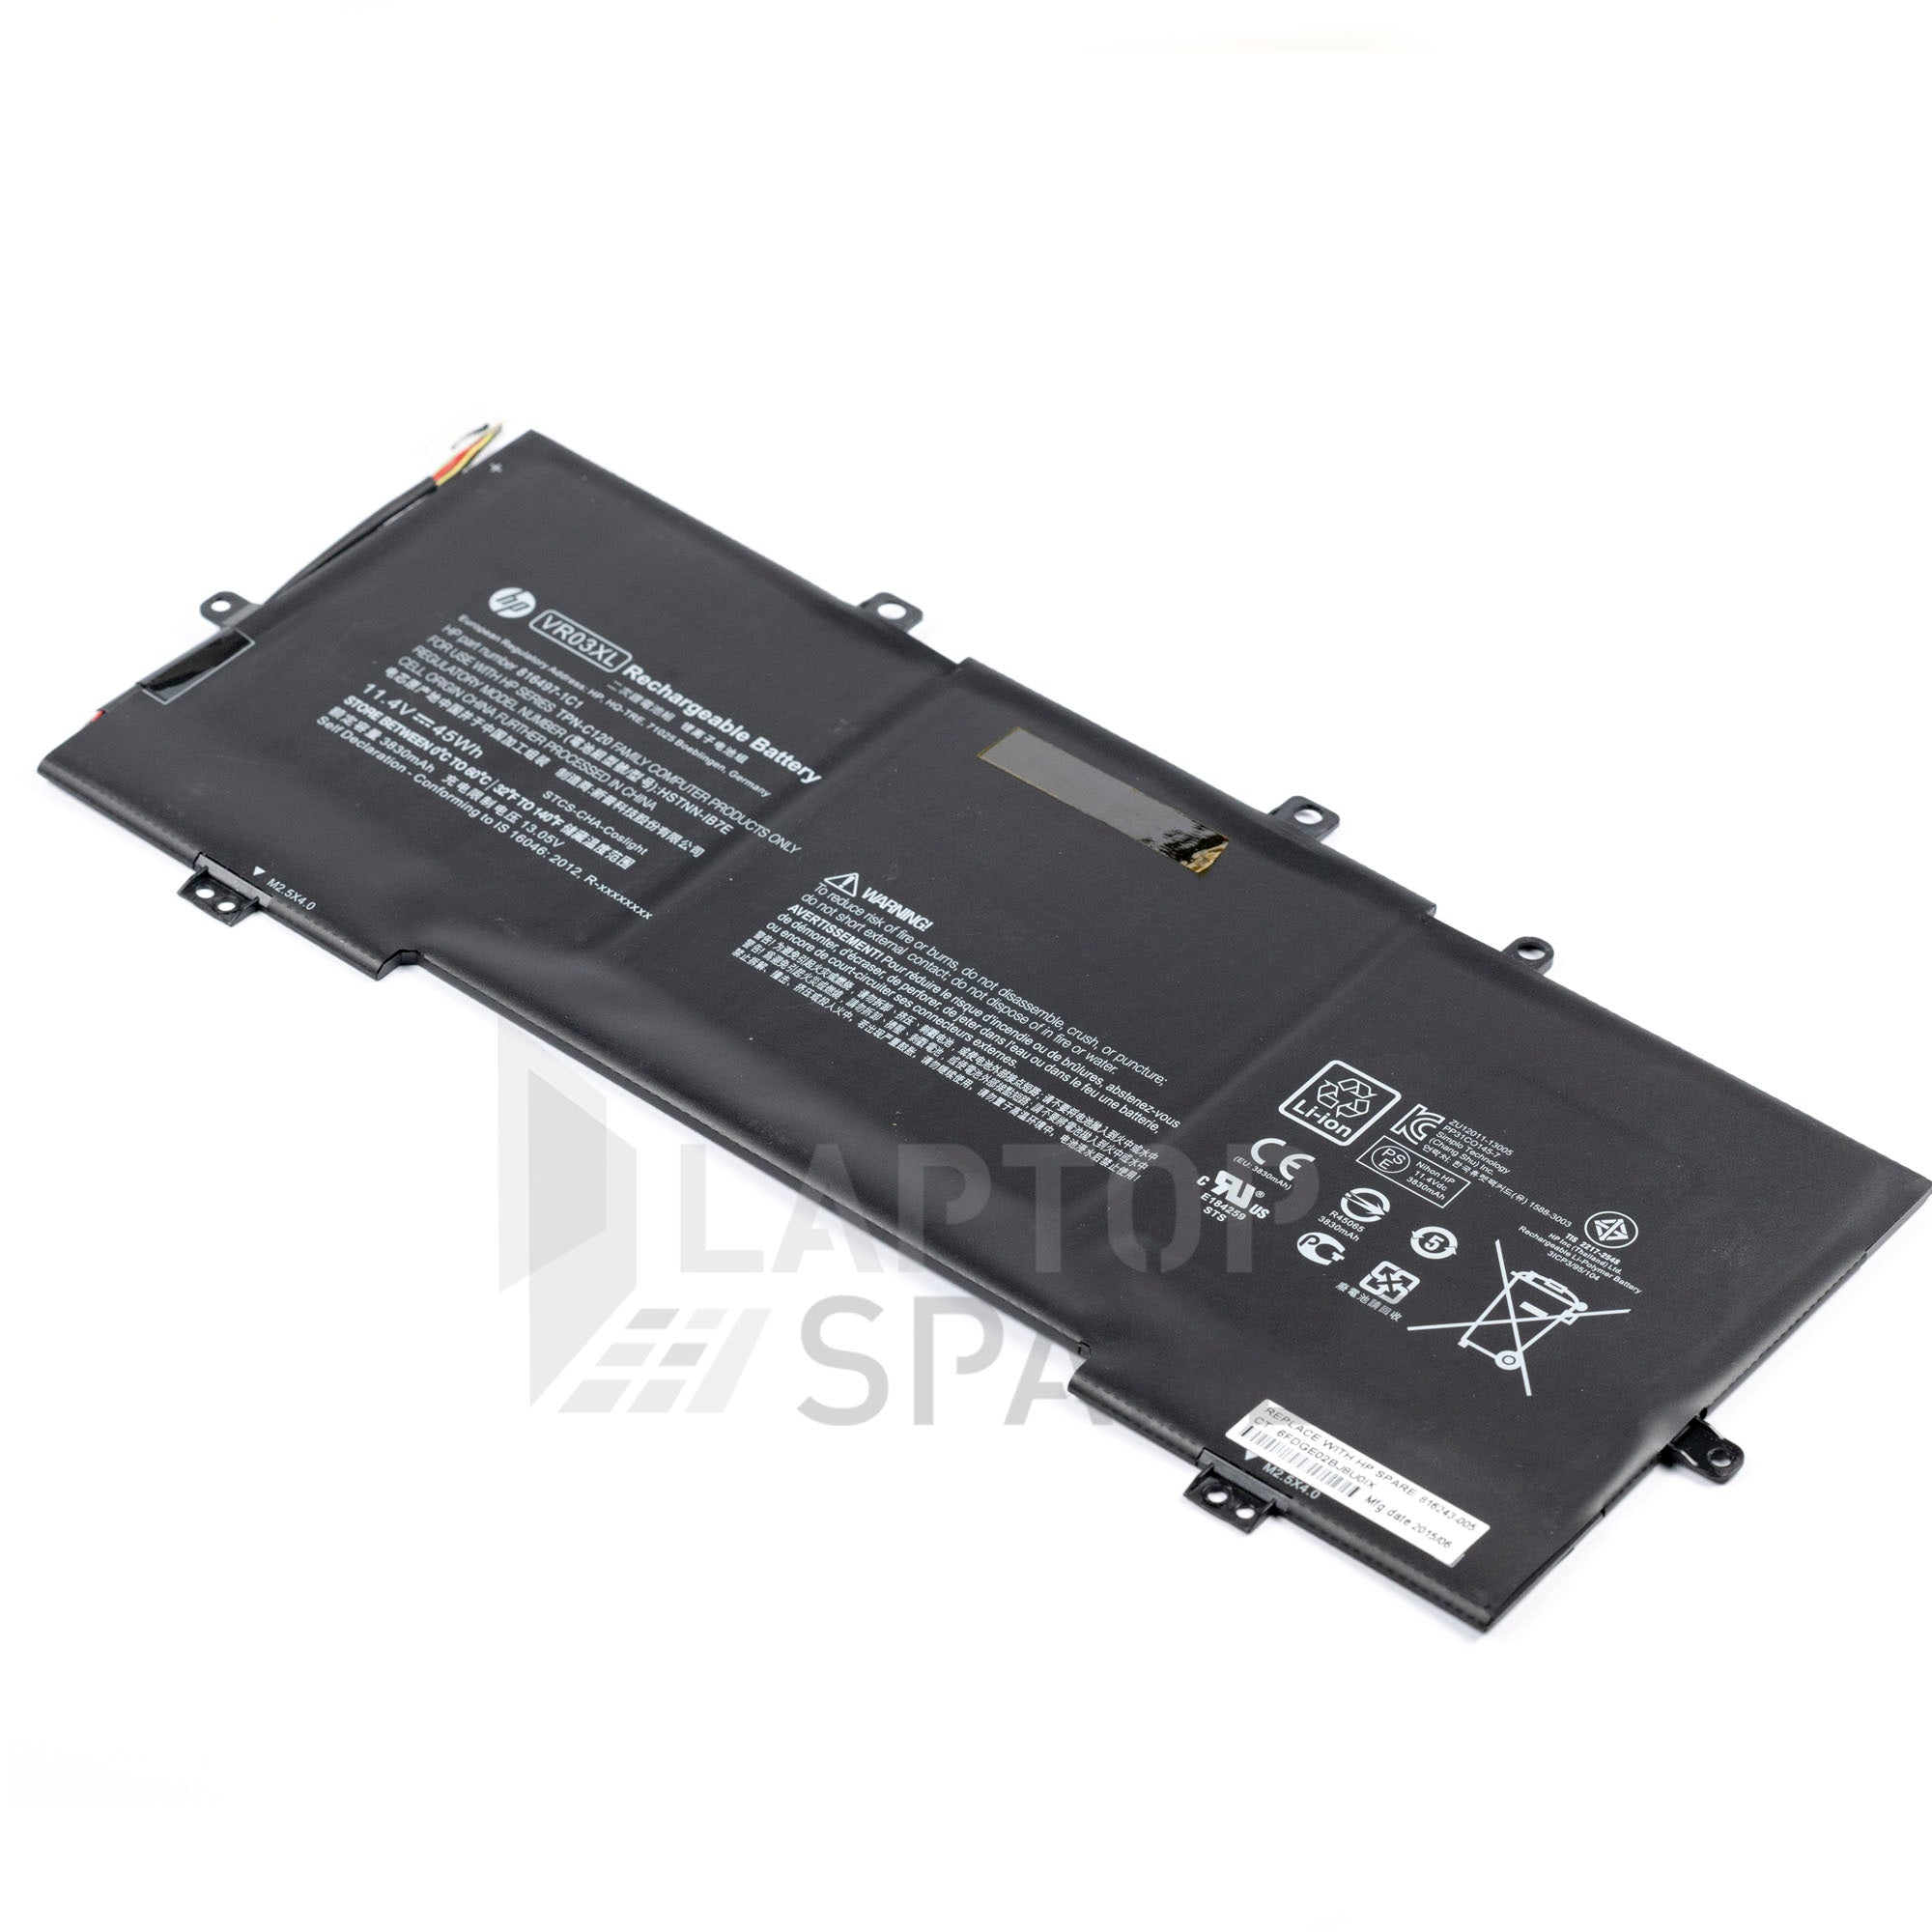 HP Envy 13D VR03XL 4000mAh Battery